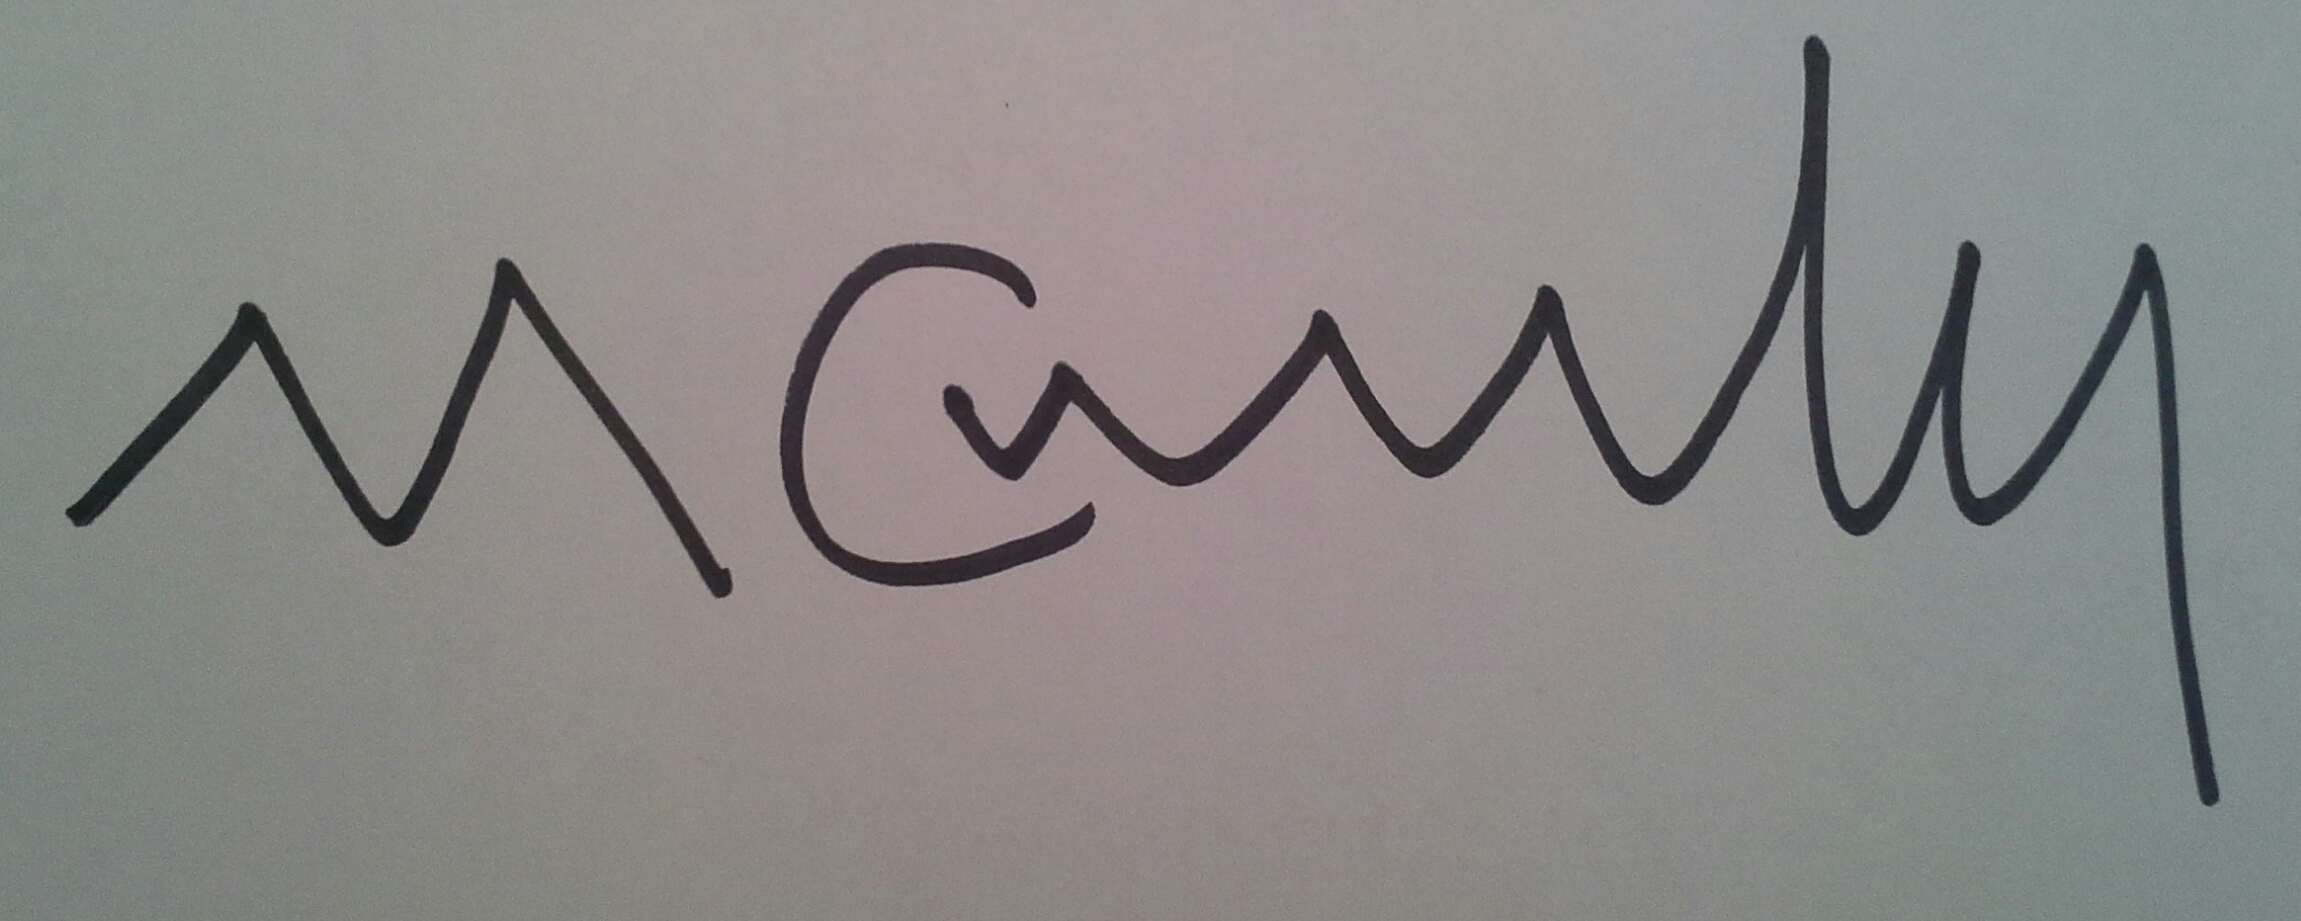 Matt Connelly's Signature